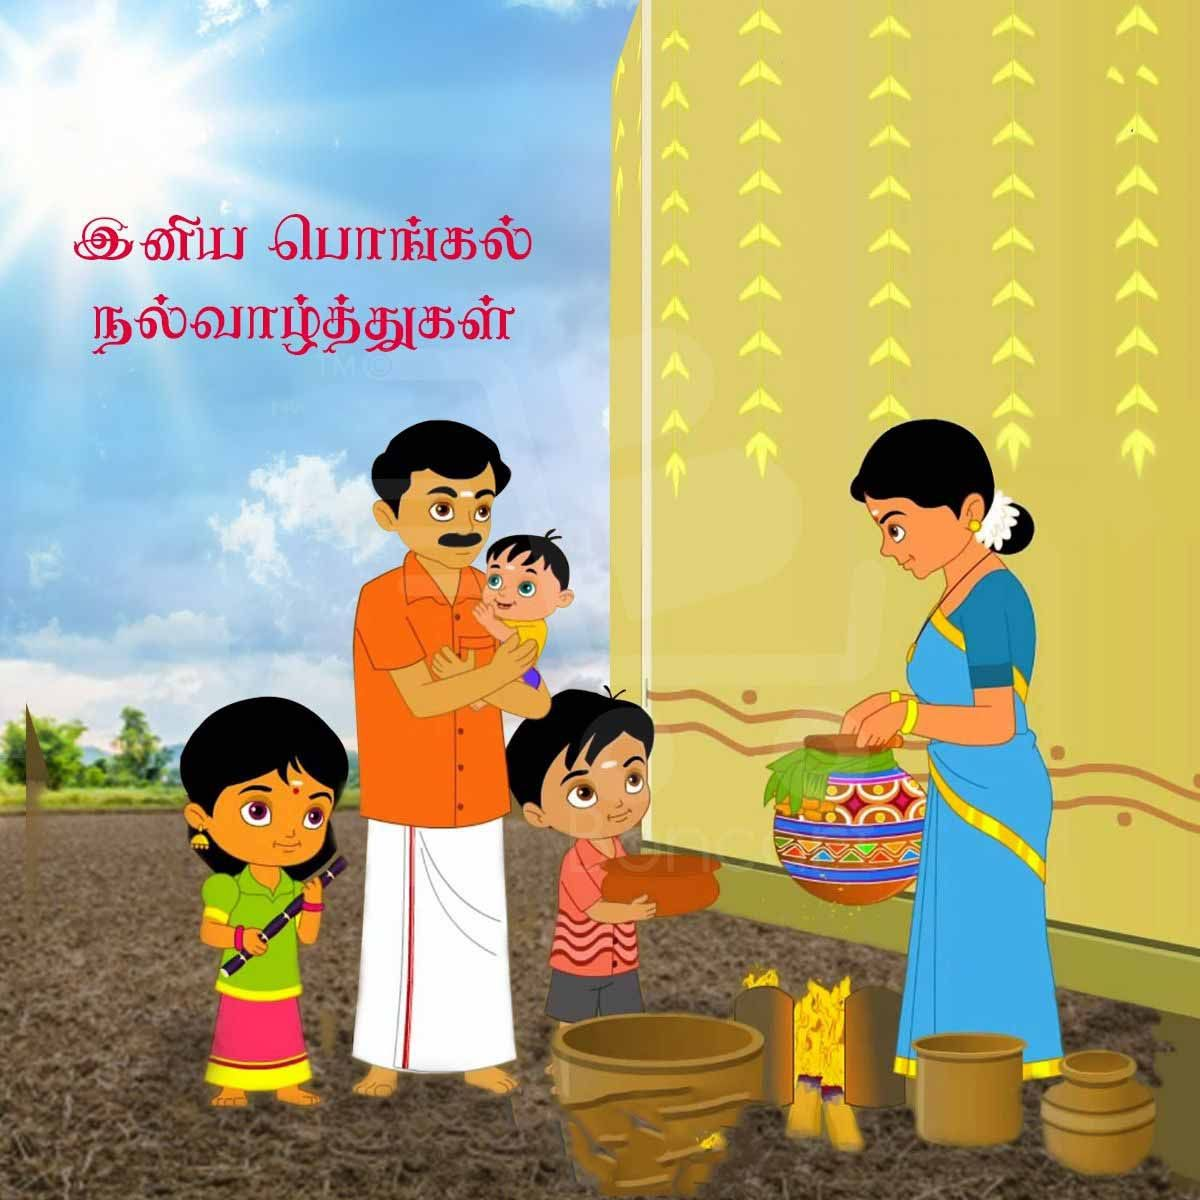 Tamil Pongal Festival Images 2019 Happy pongal wishes